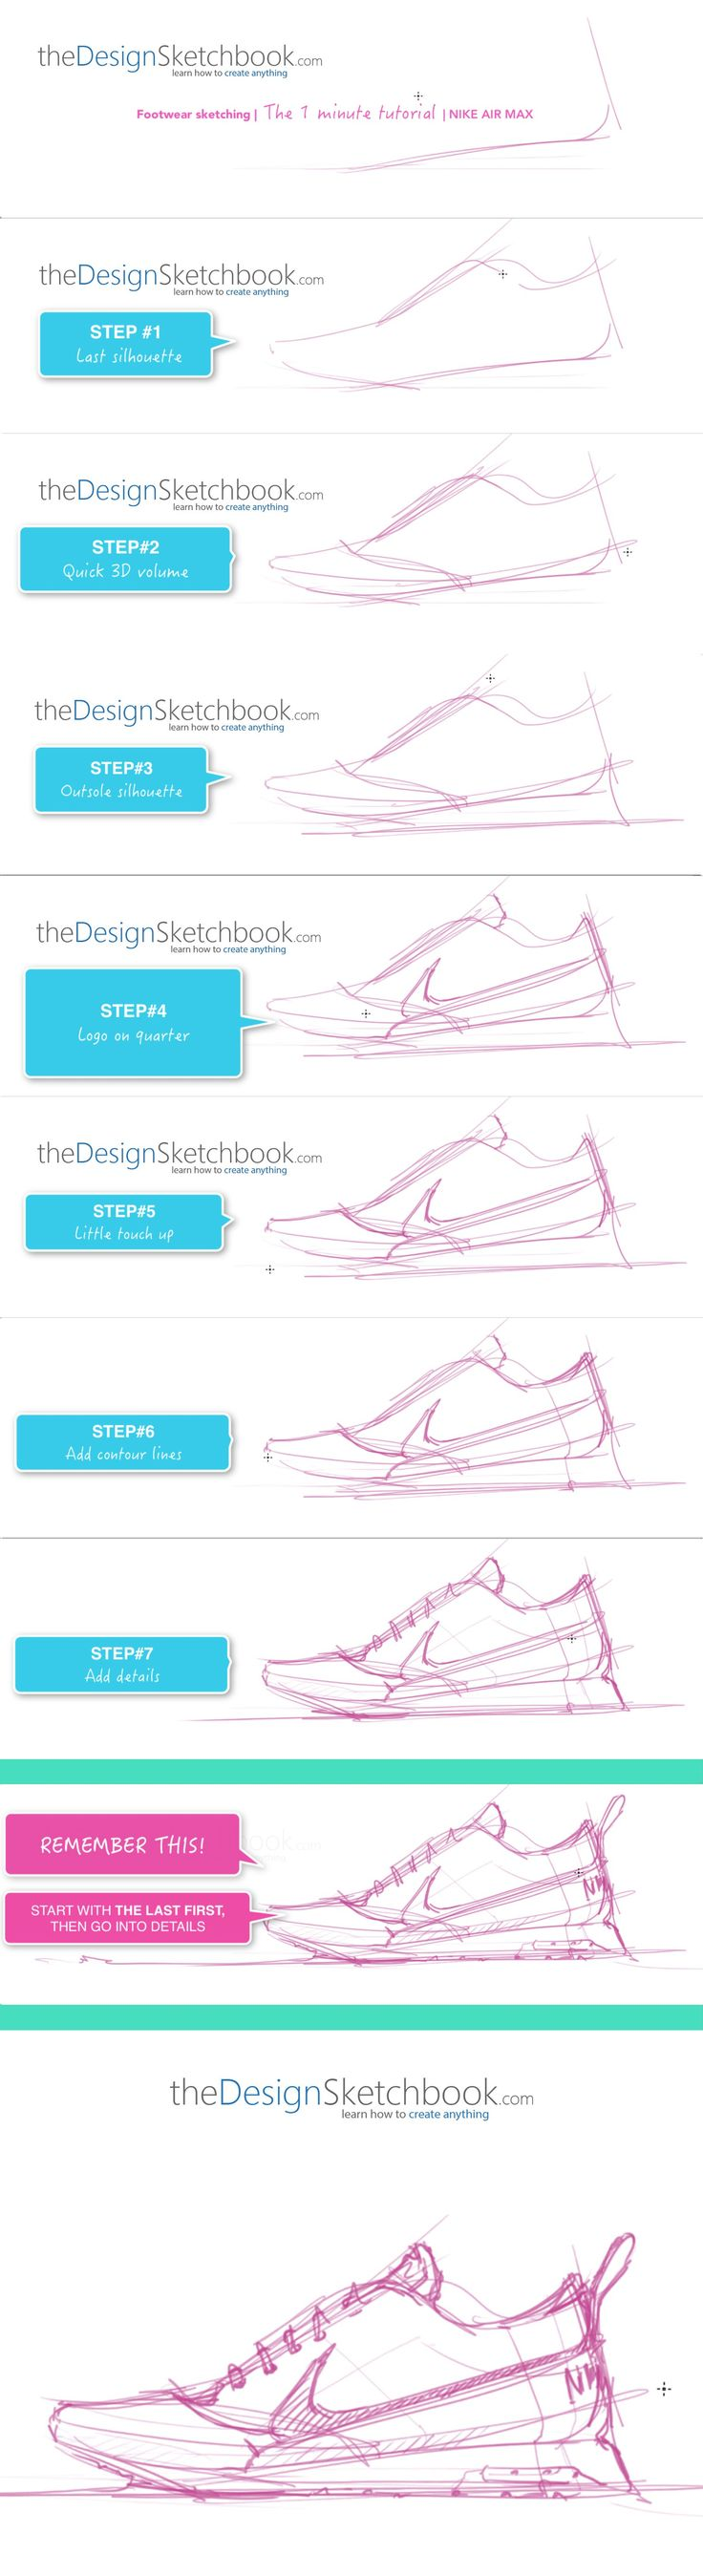 Nike Air Max Design sketching - The design sketchbook - the 1 minute tutorial More